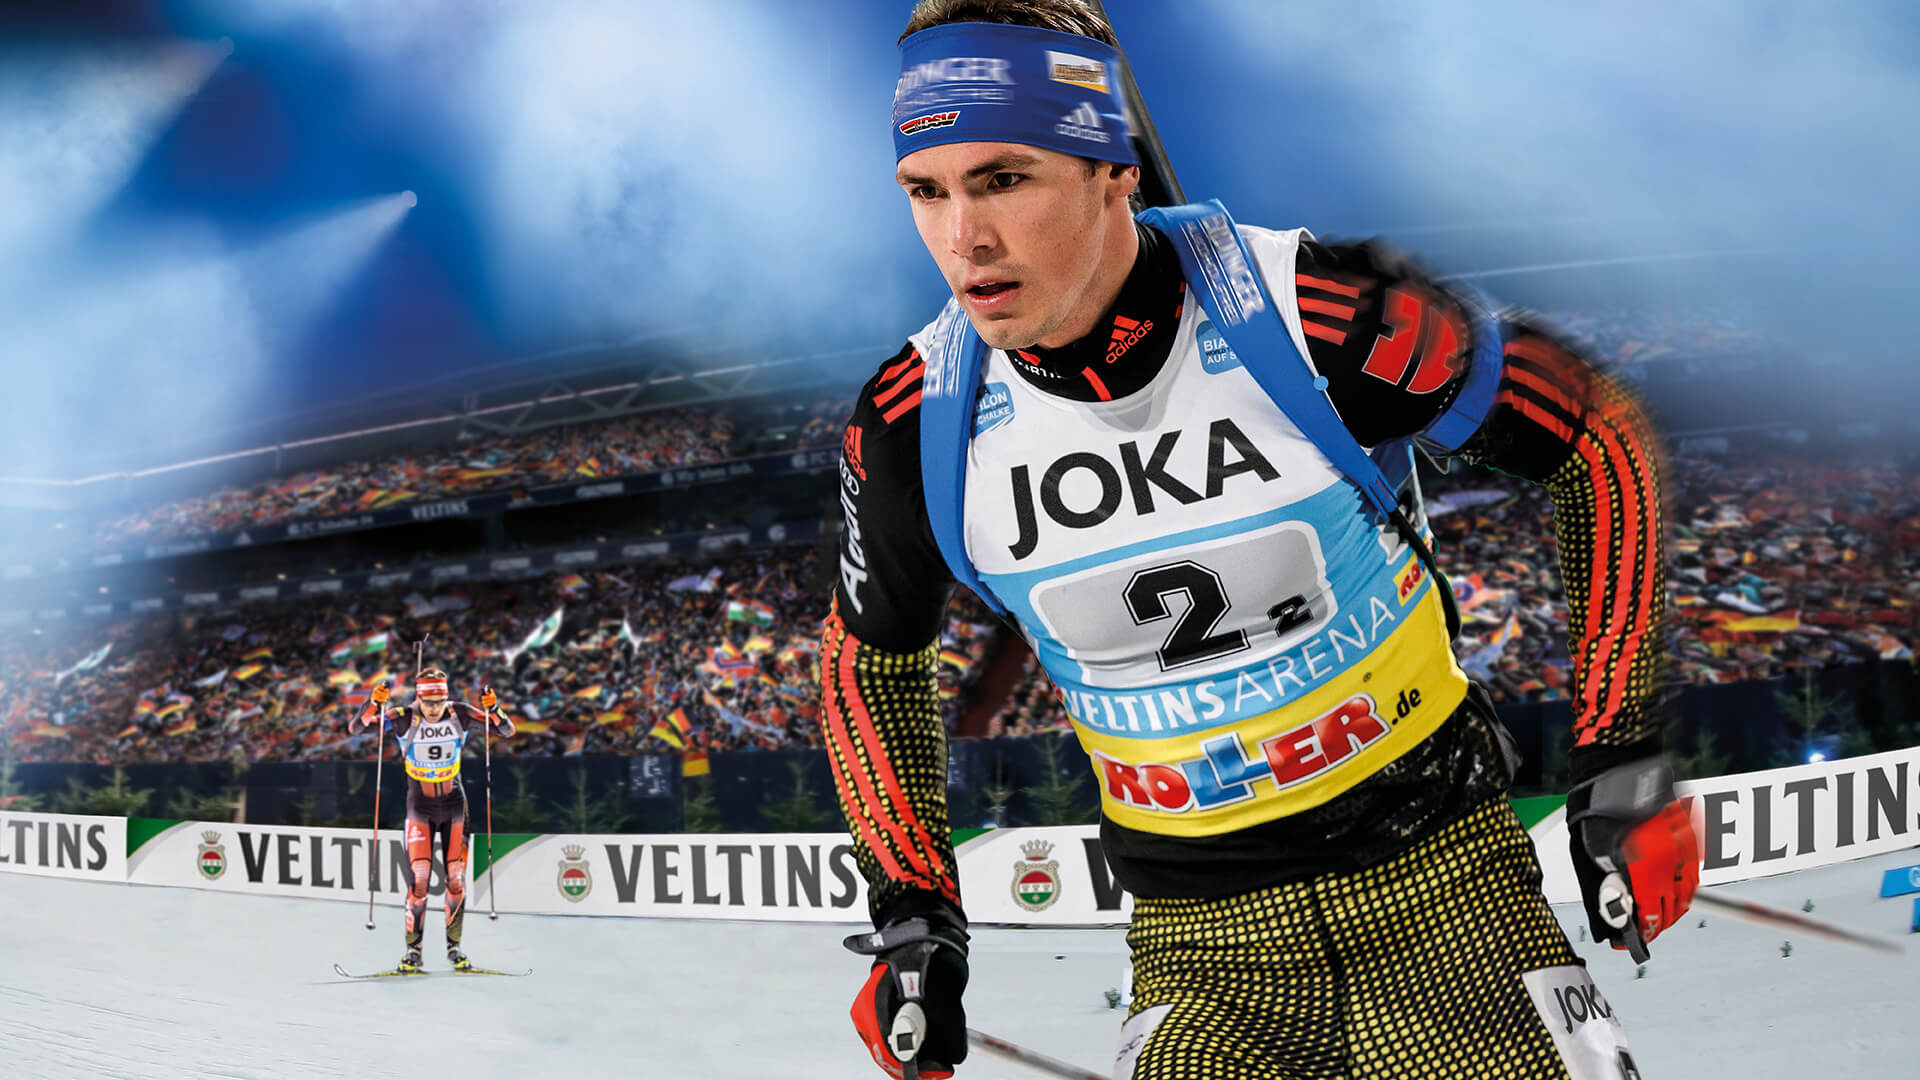 joka ist titelsponsor der biathlon wtc auf schalke joka biathlon wtc. Black Bedroom Furniture Sets. Home Design Ideas